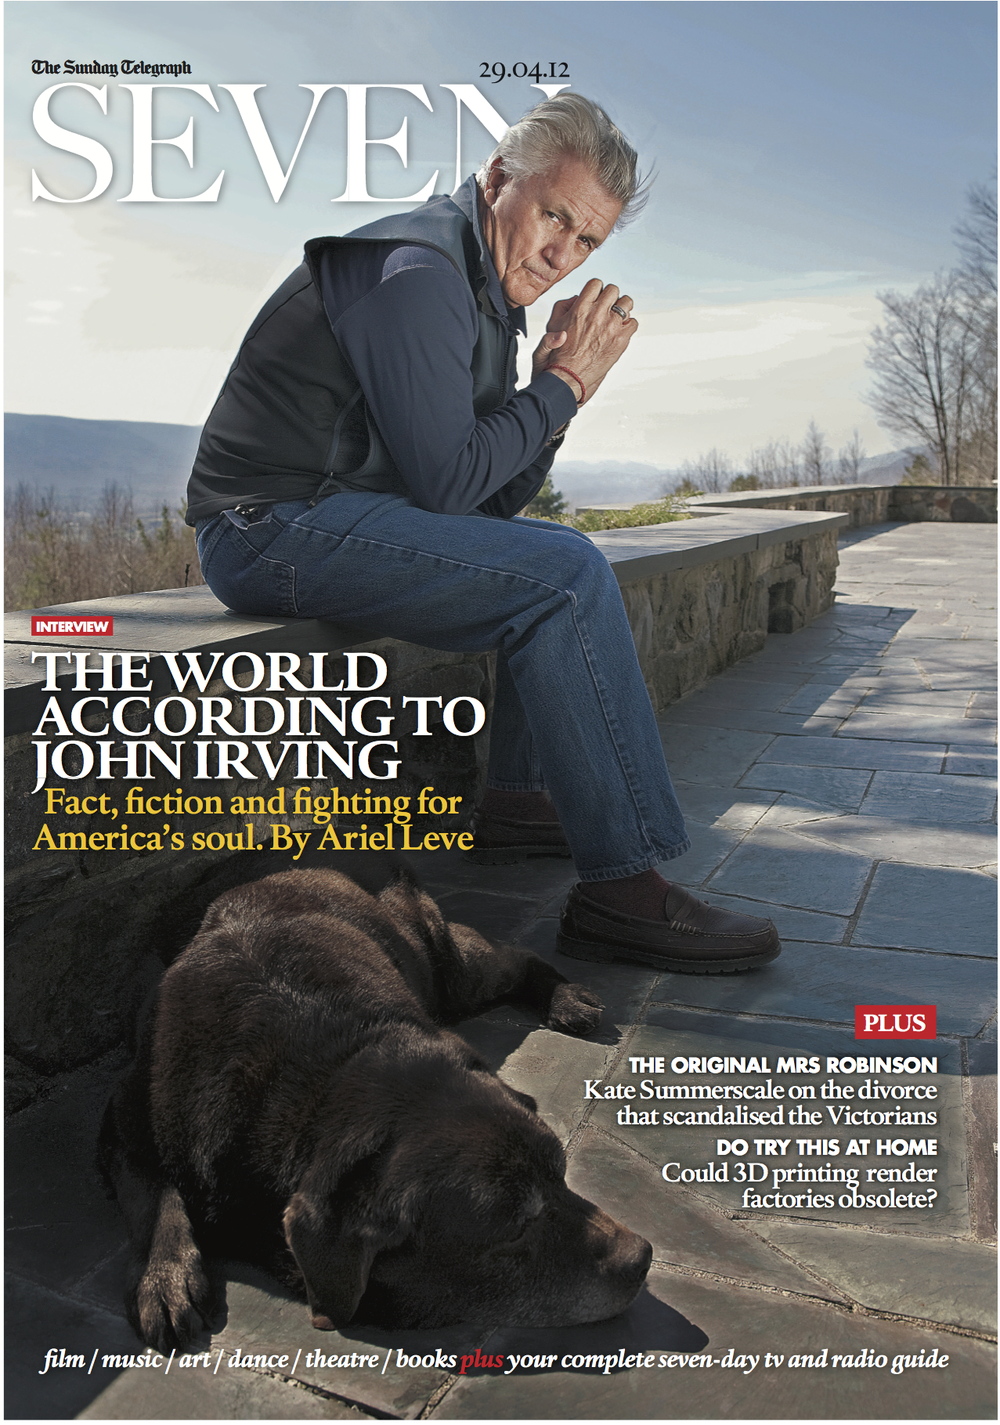 Sunday Magazine photo Blake Fitch of John Irving cover.jpg